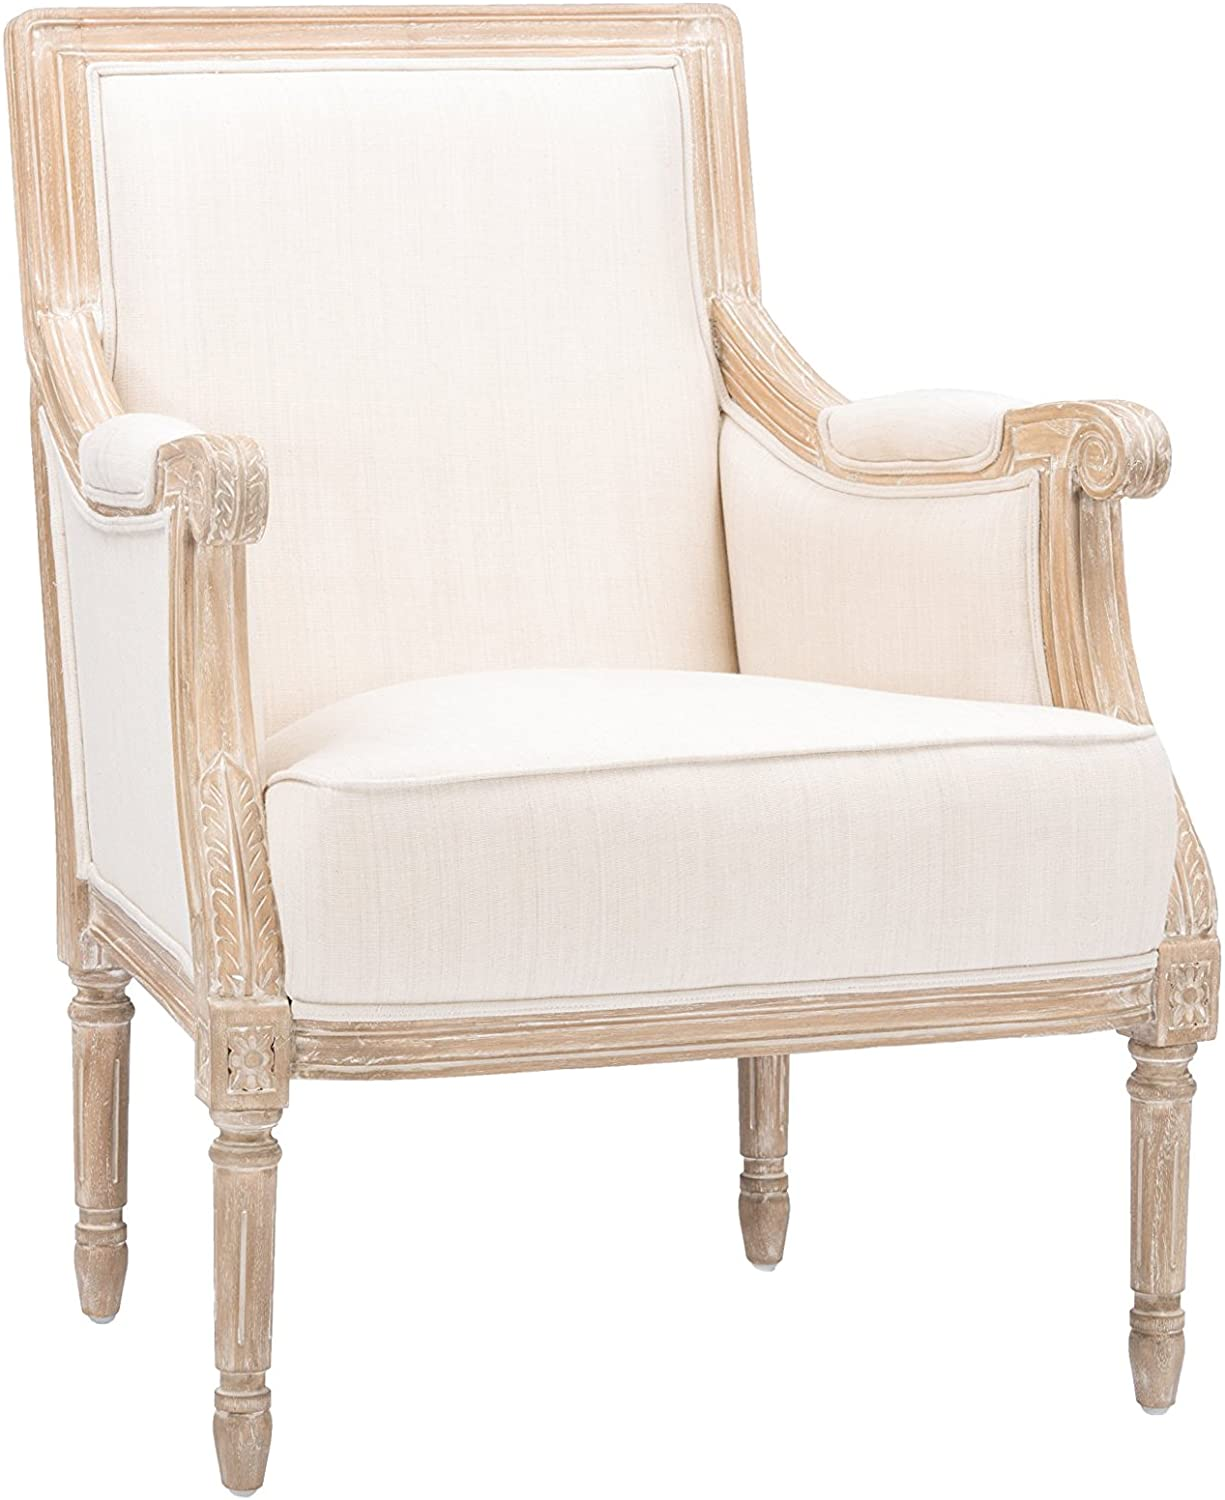 French country arm chair.